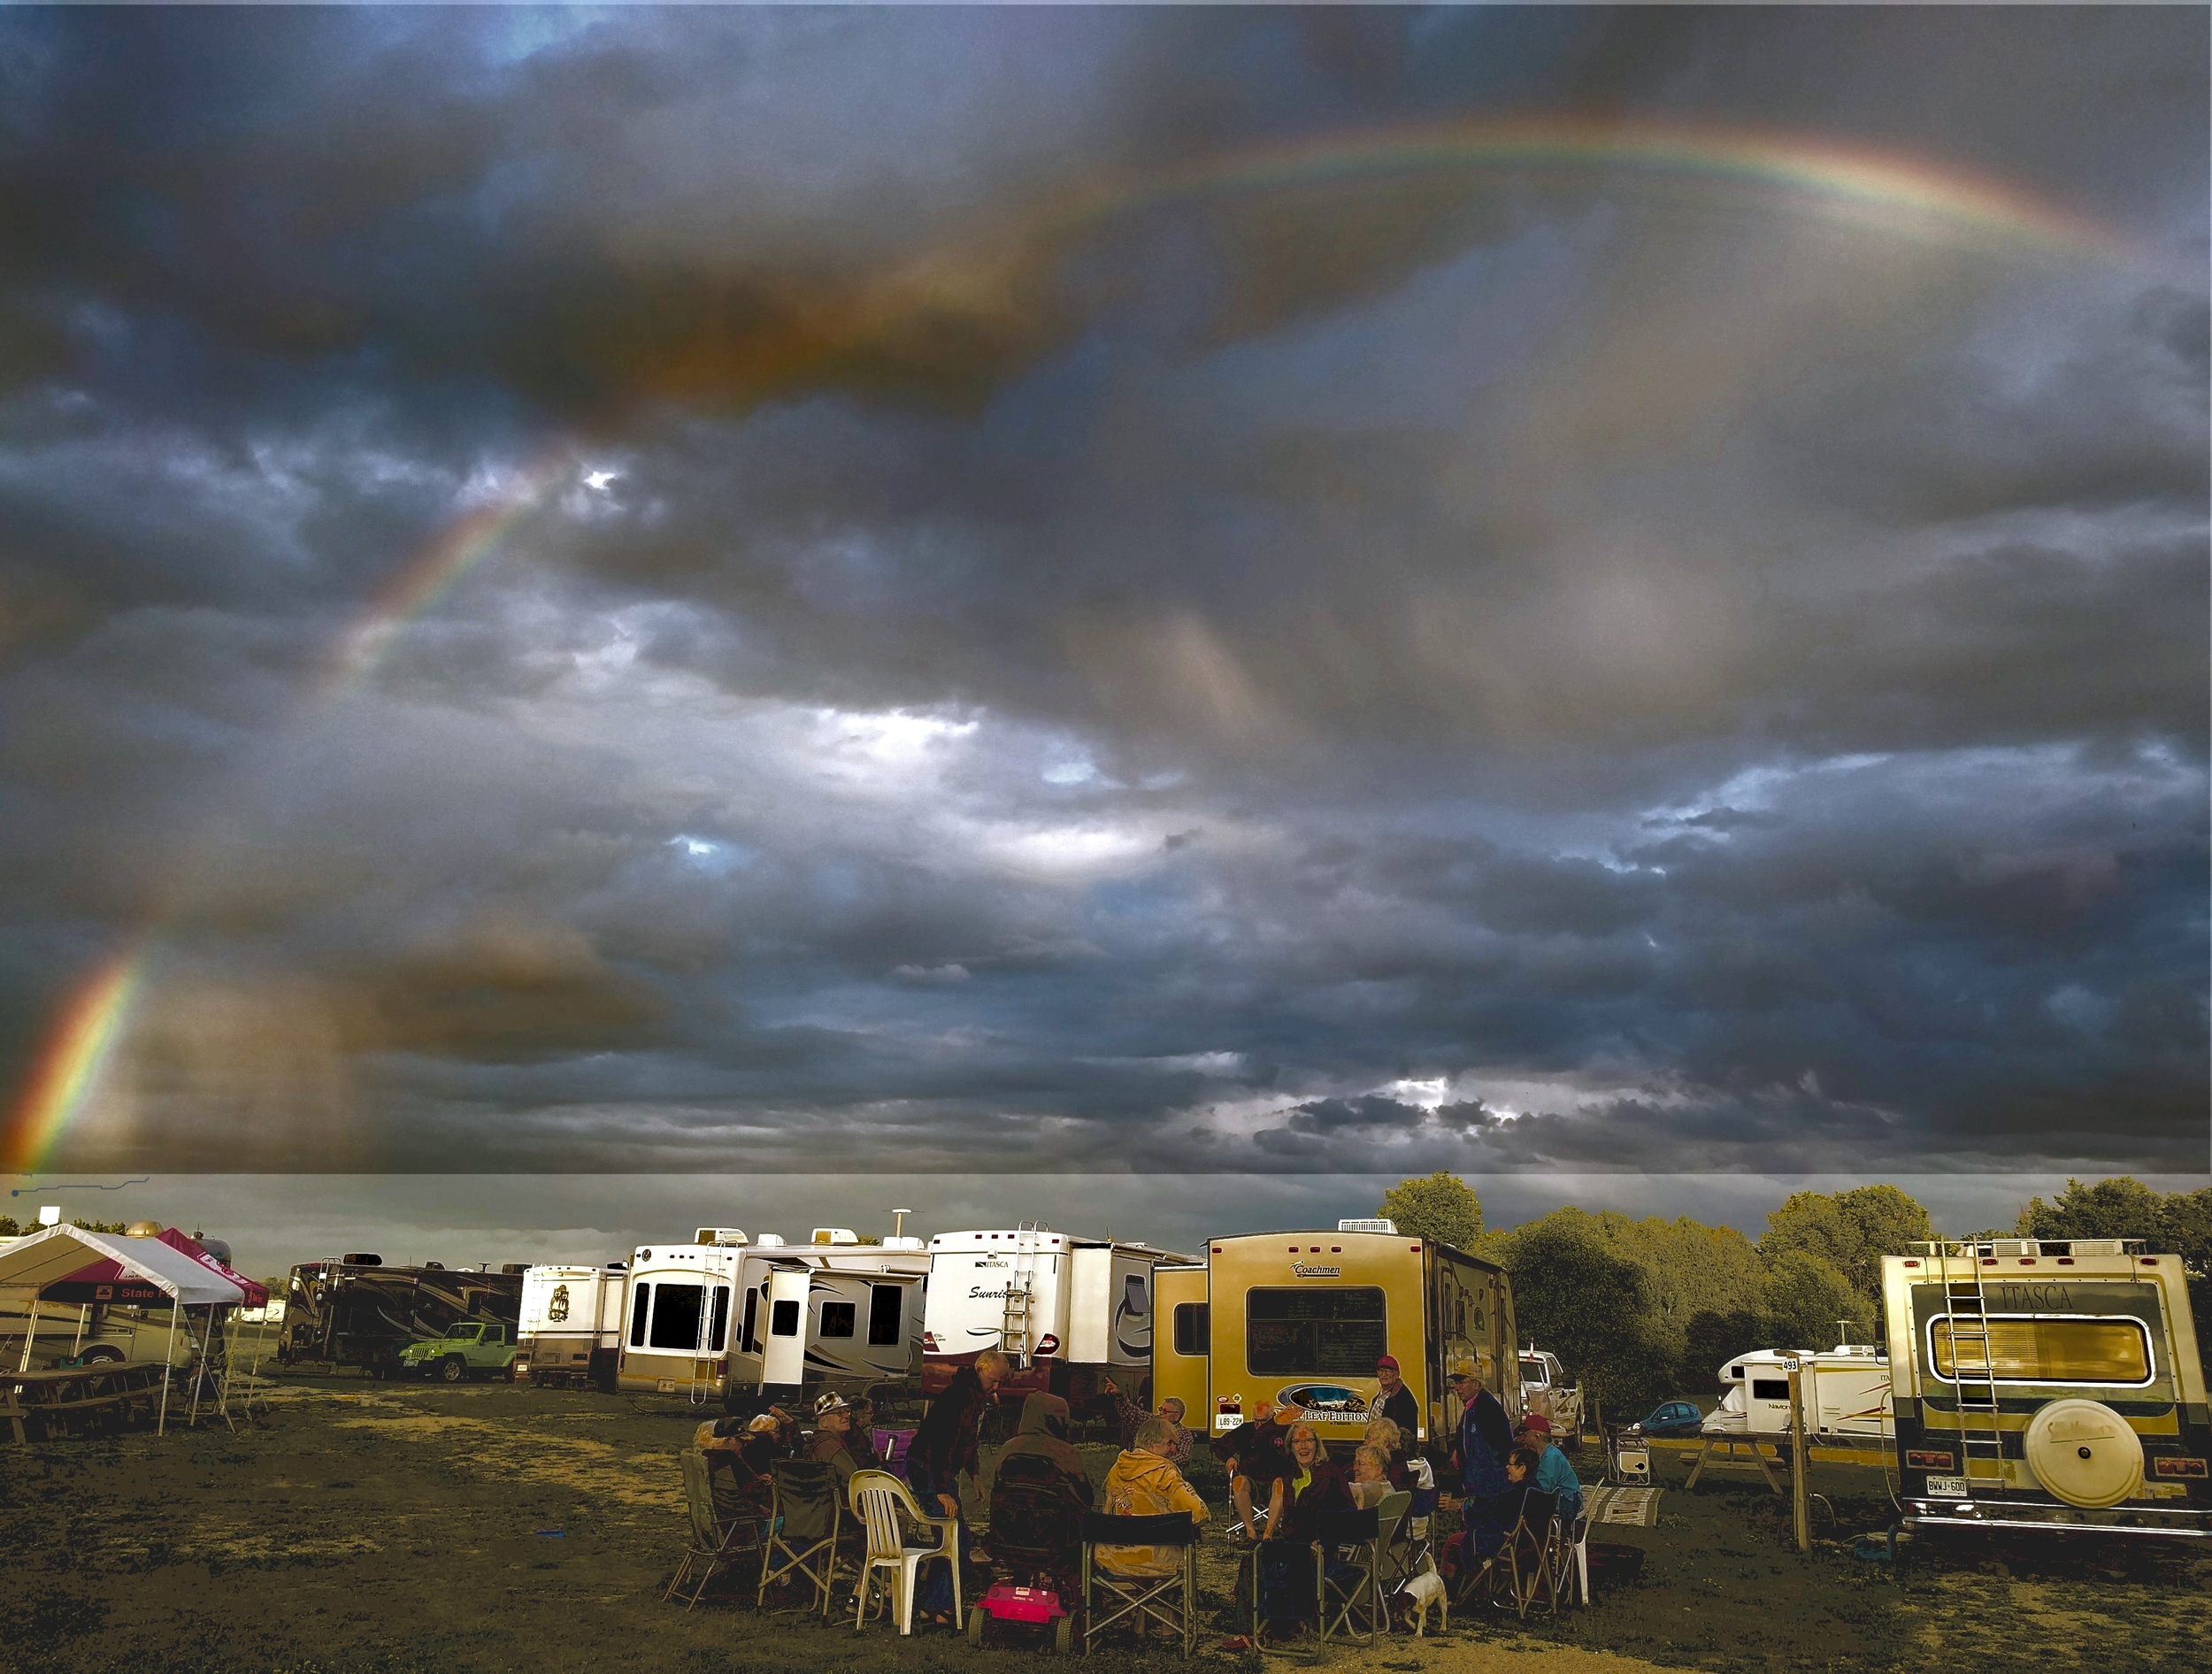 A rainbow hovers above as the group gathers around a warm fire.